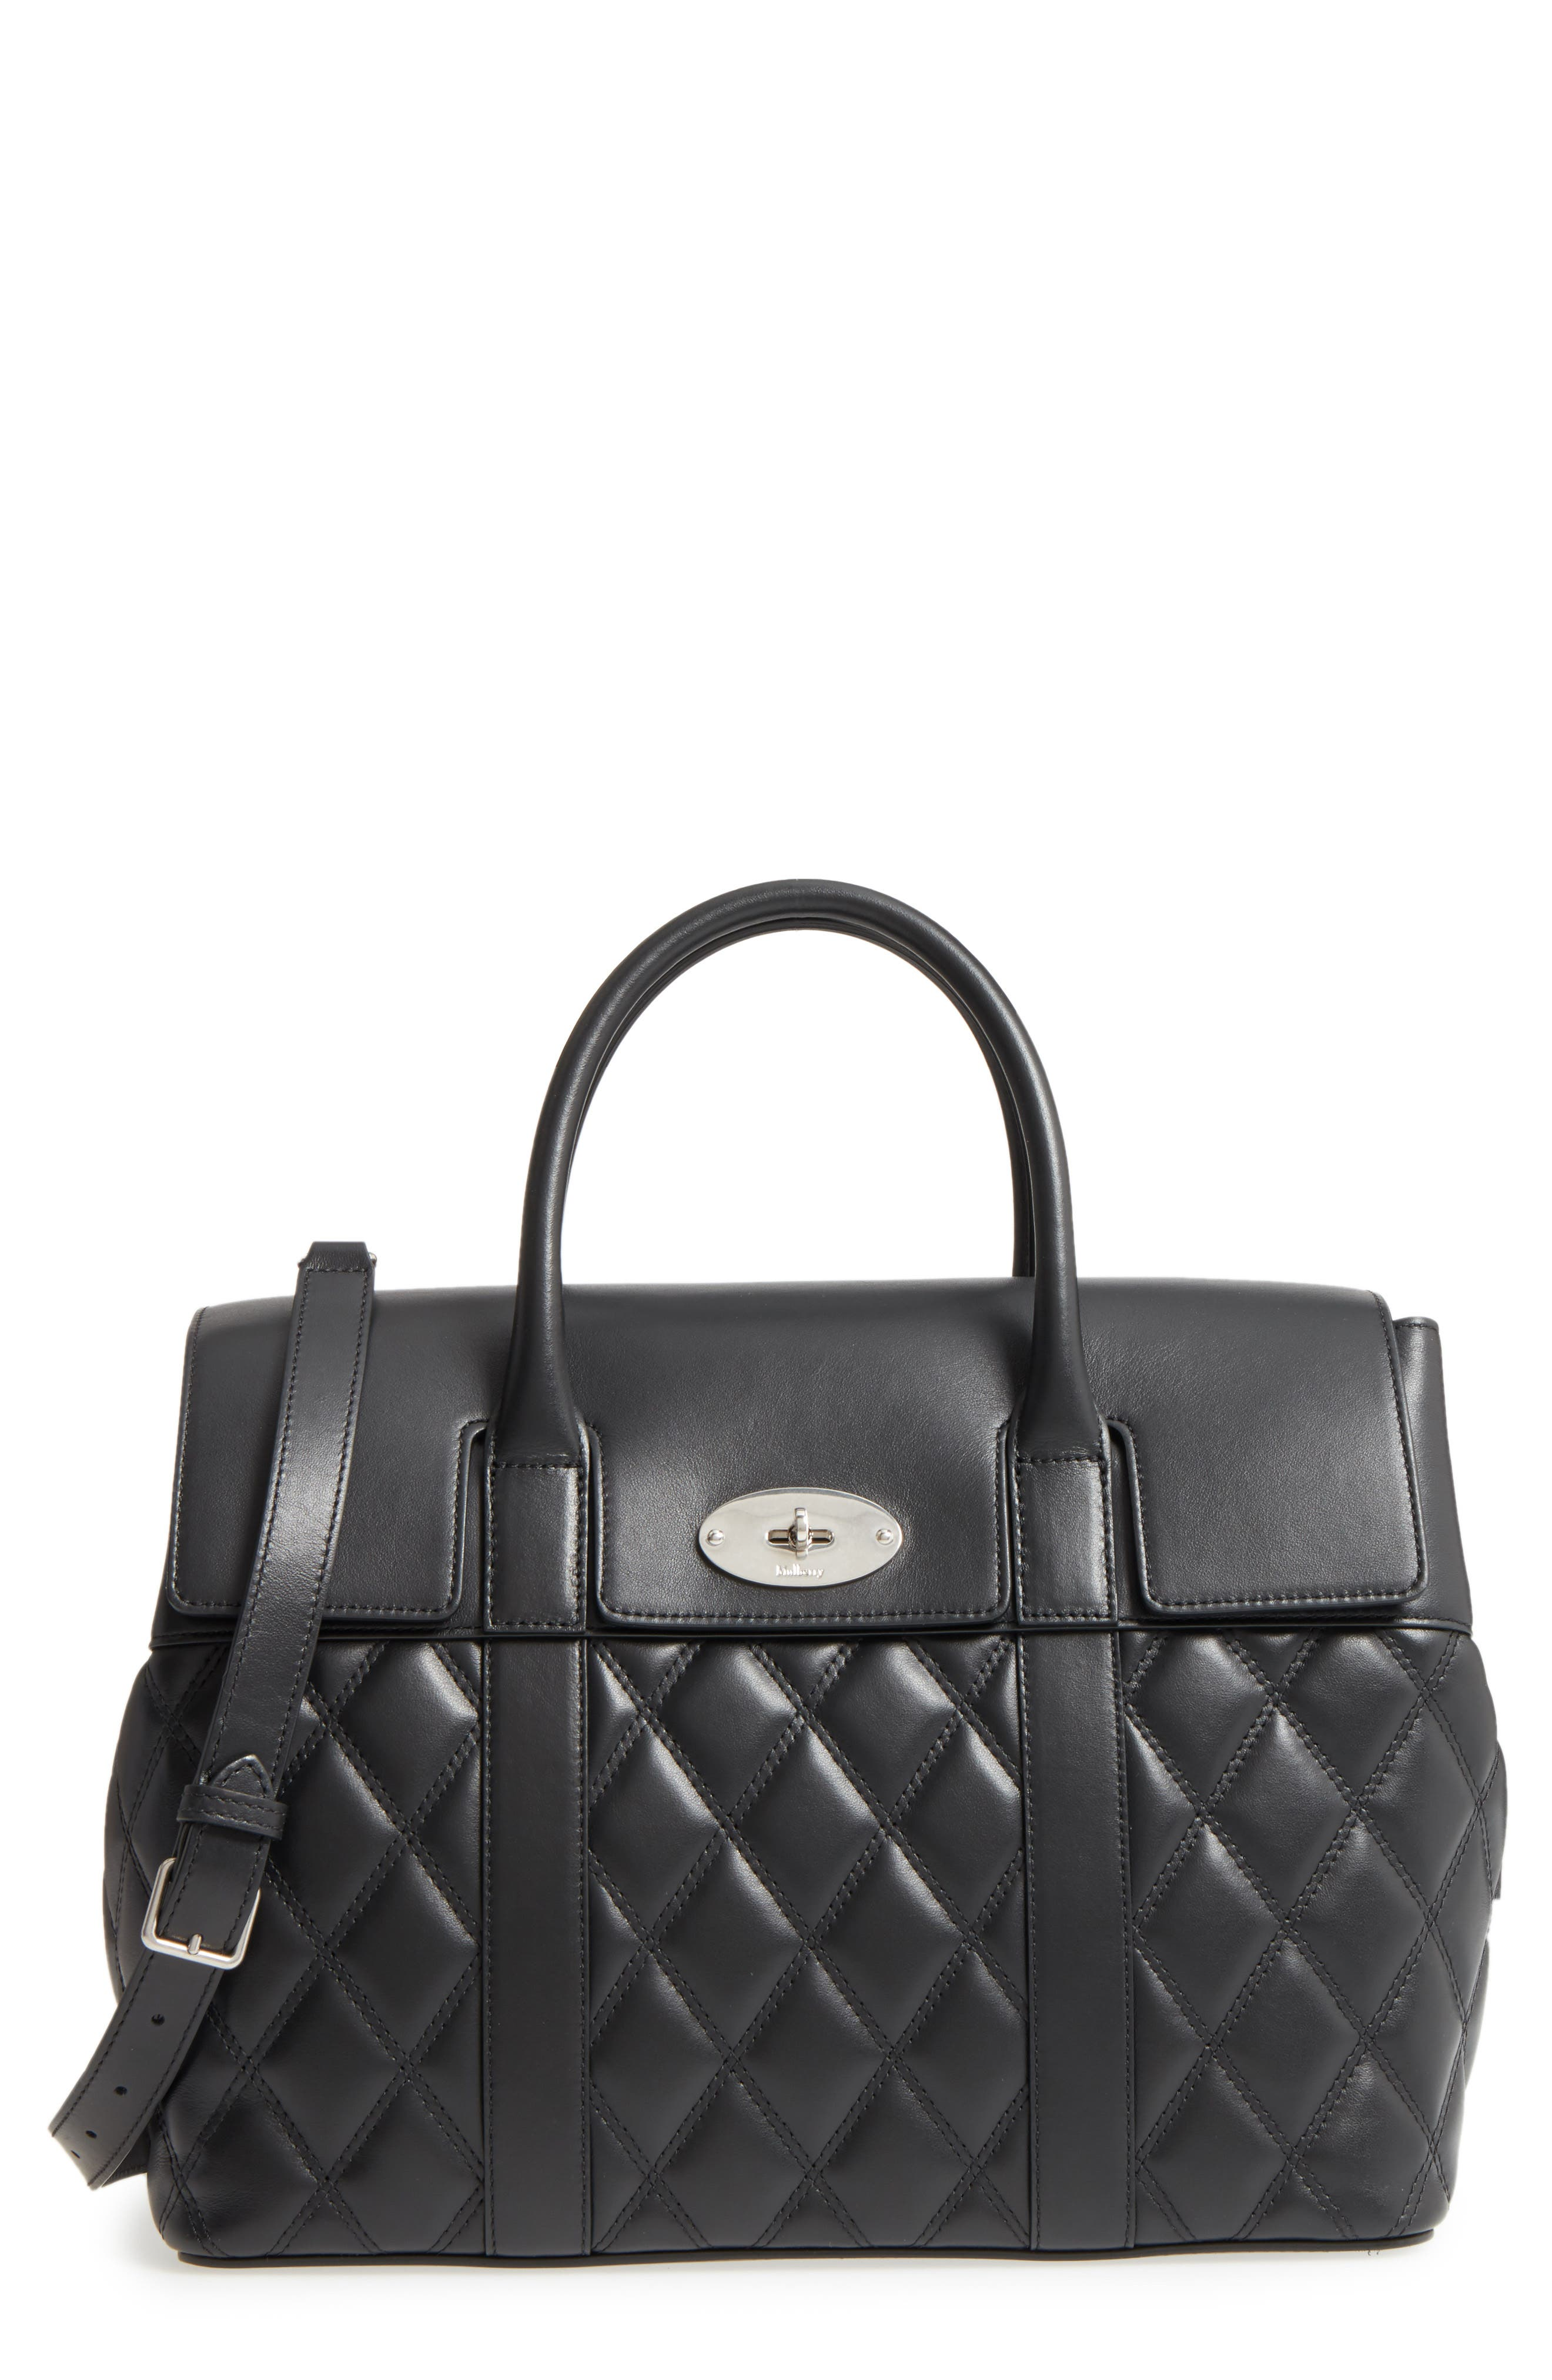 Alternate Image 1 Selected - Mulberry Bayswater Quilted Calfskin Leather Satchel